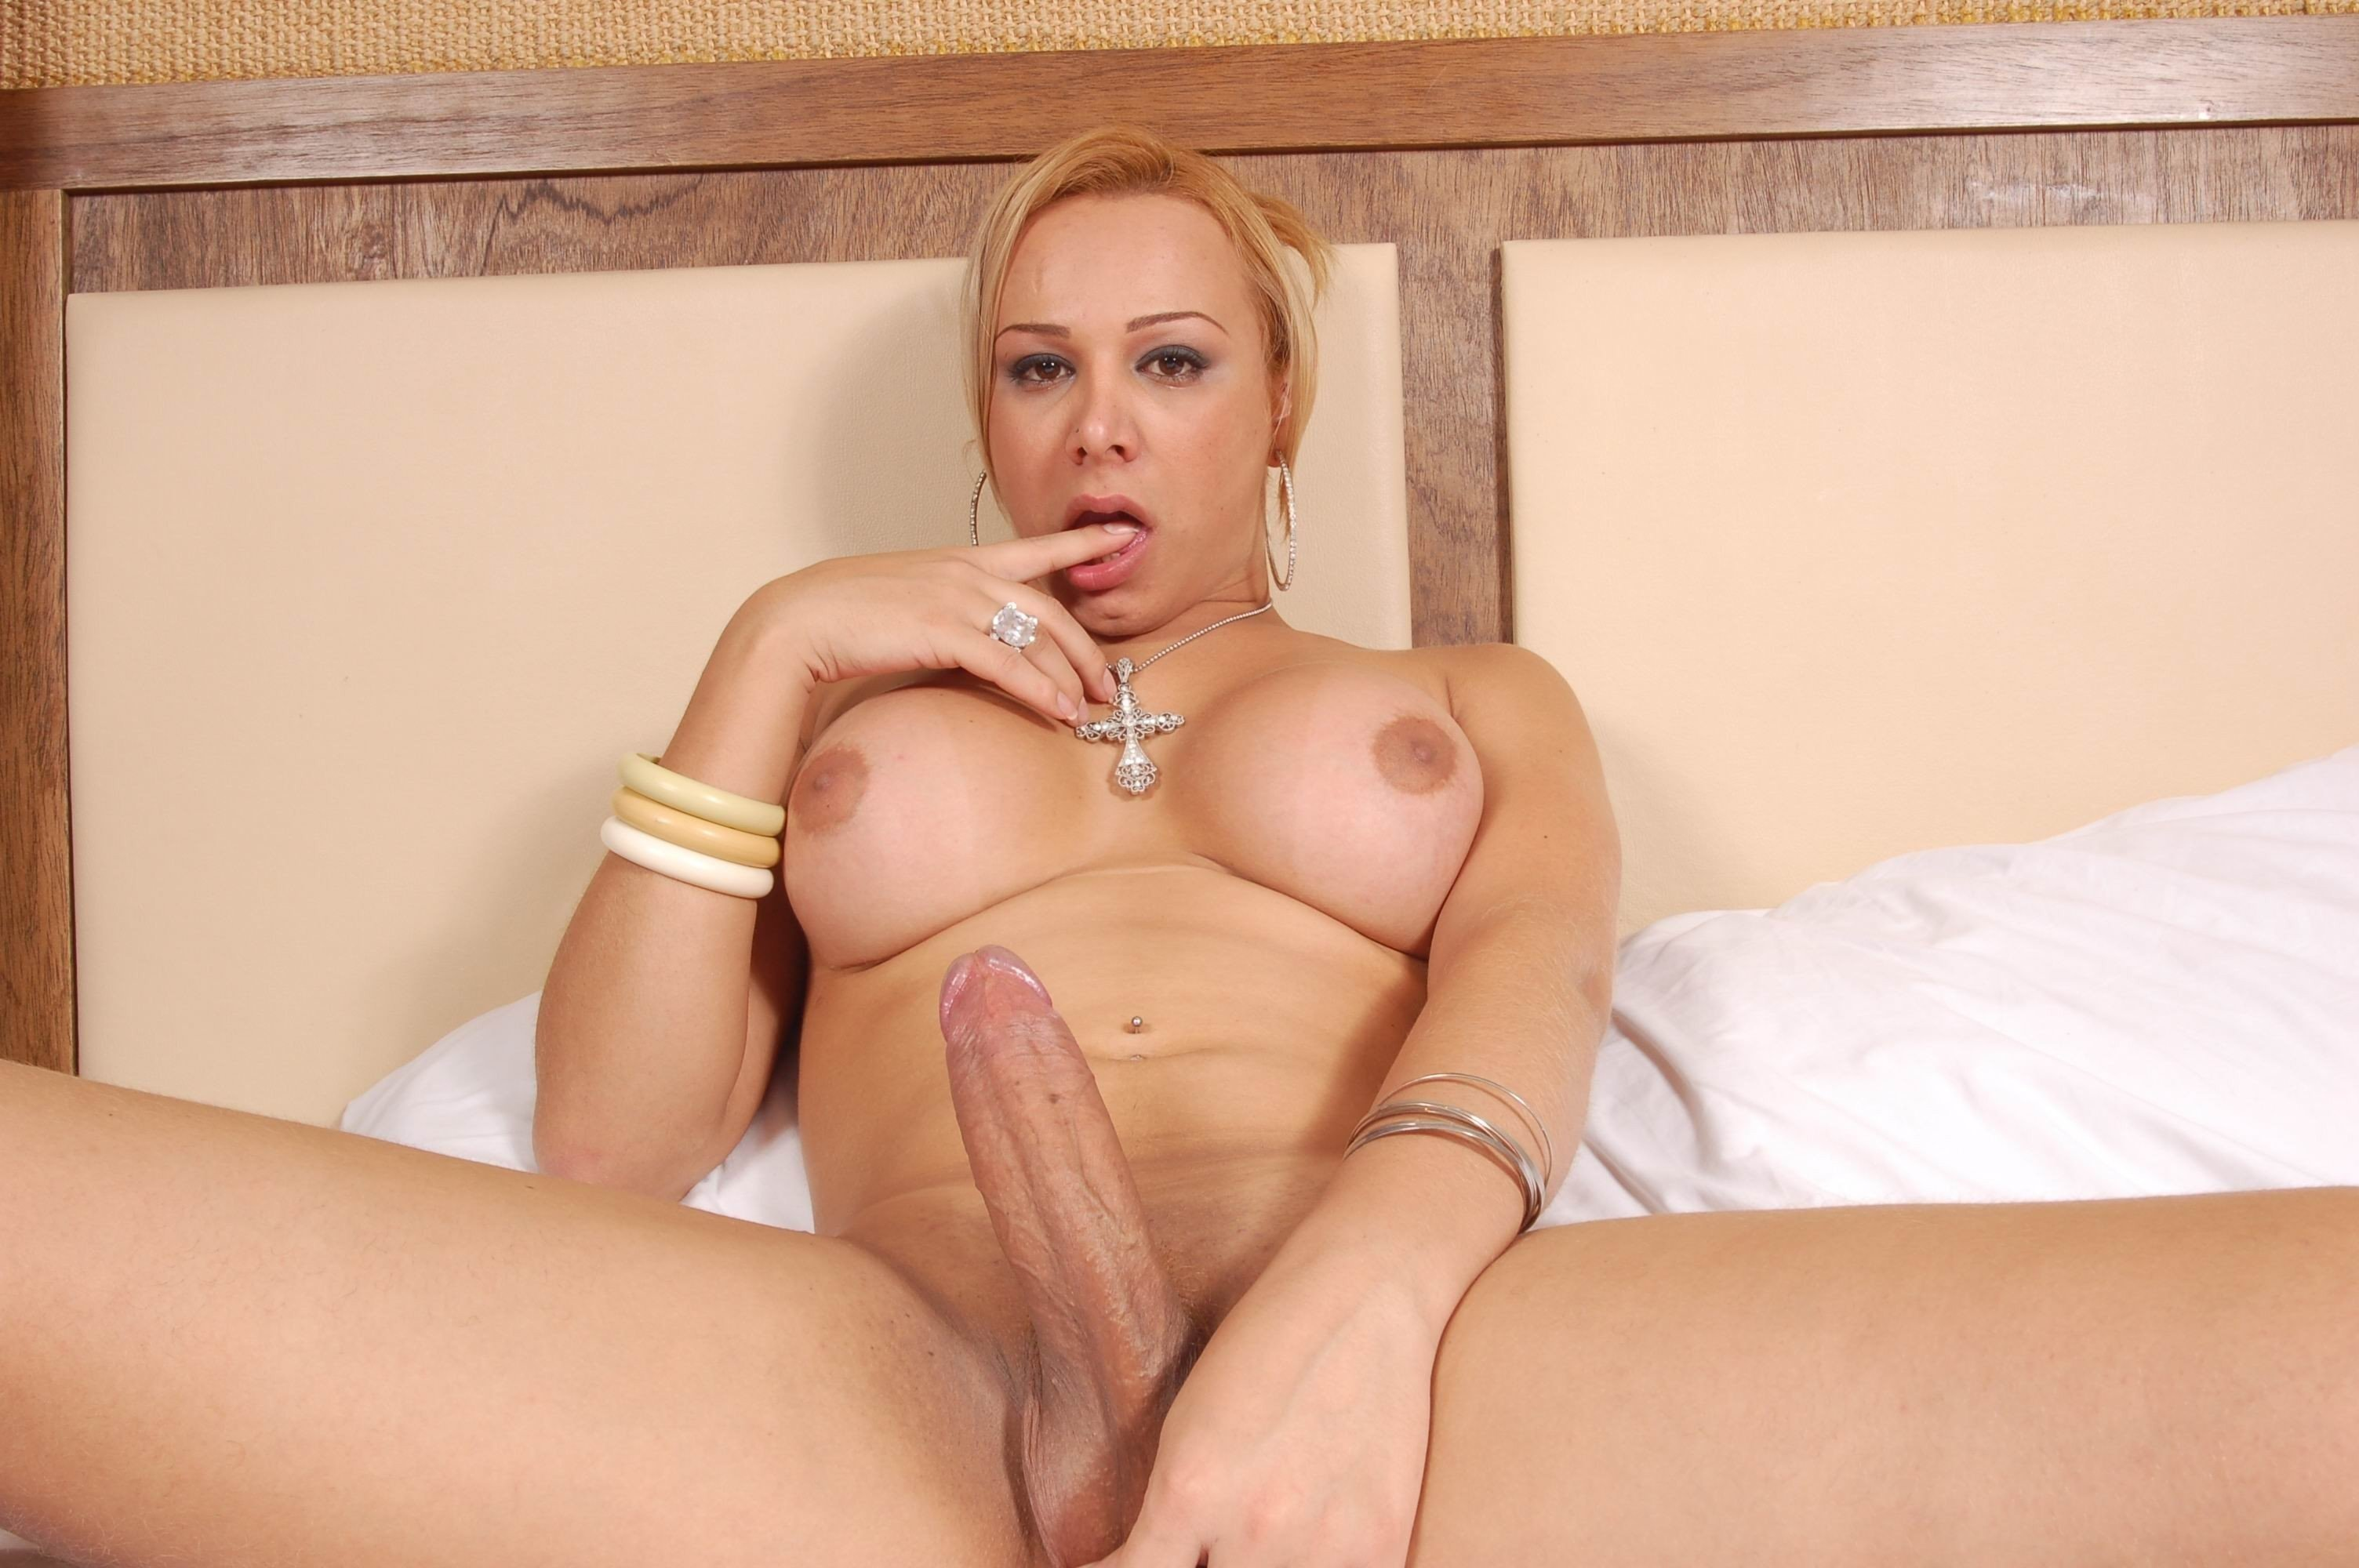 Naughty deanna gets hard dick